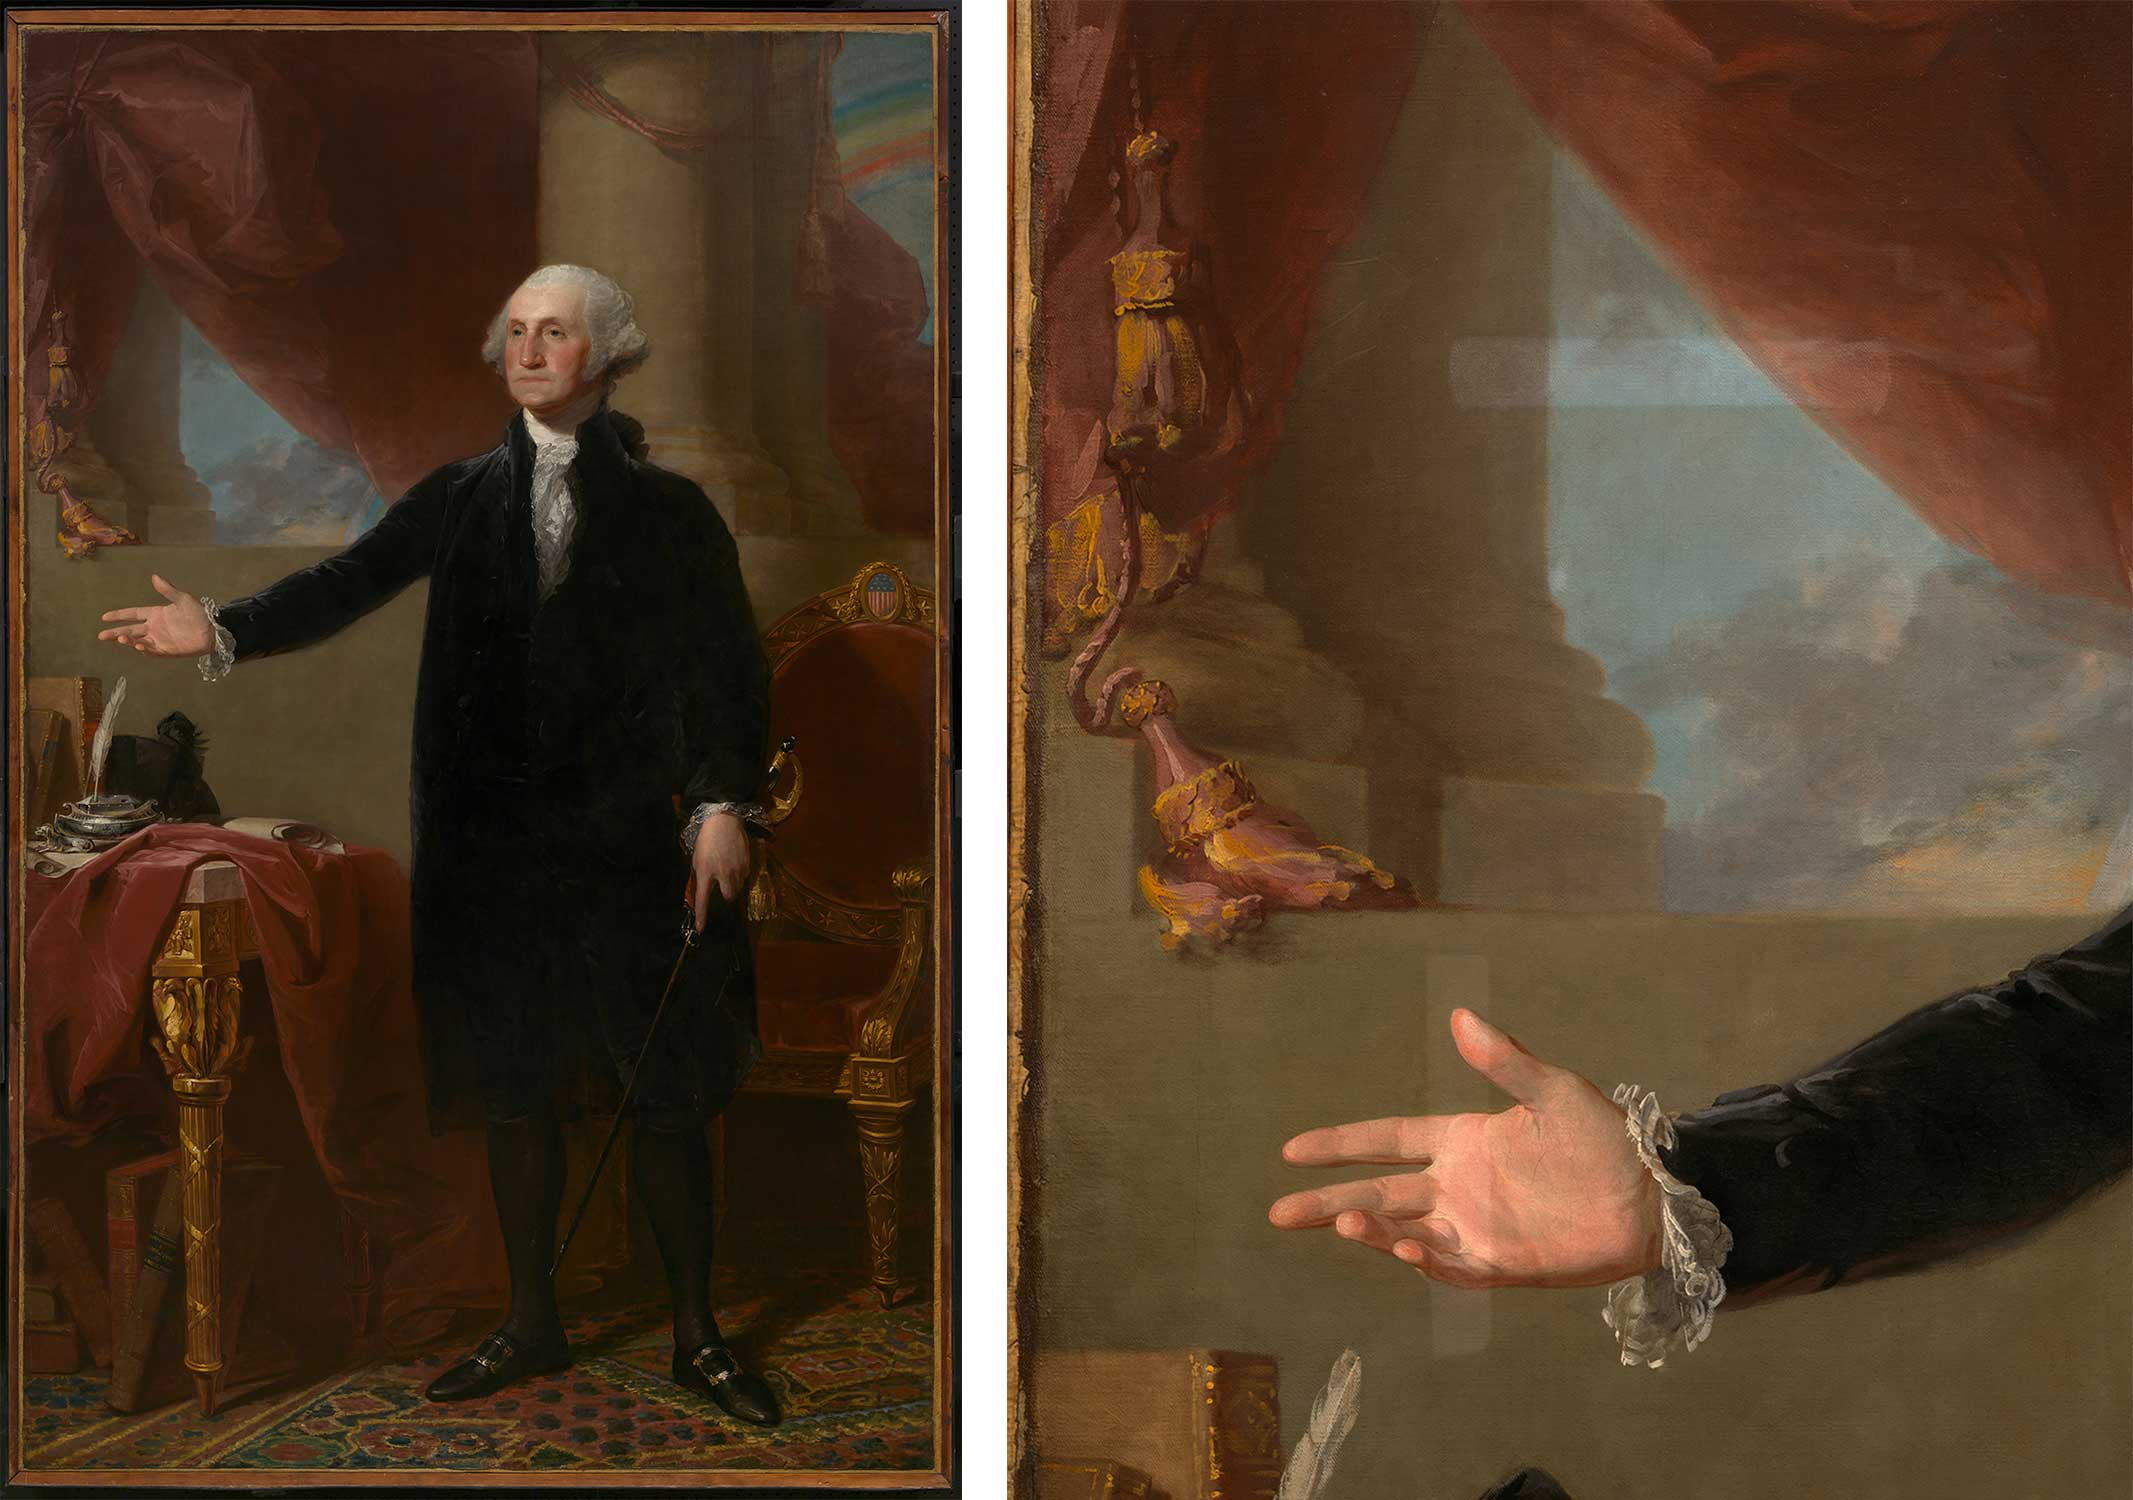 An image of the entire Lansdowne portrait and a close up of its hand being cleaned